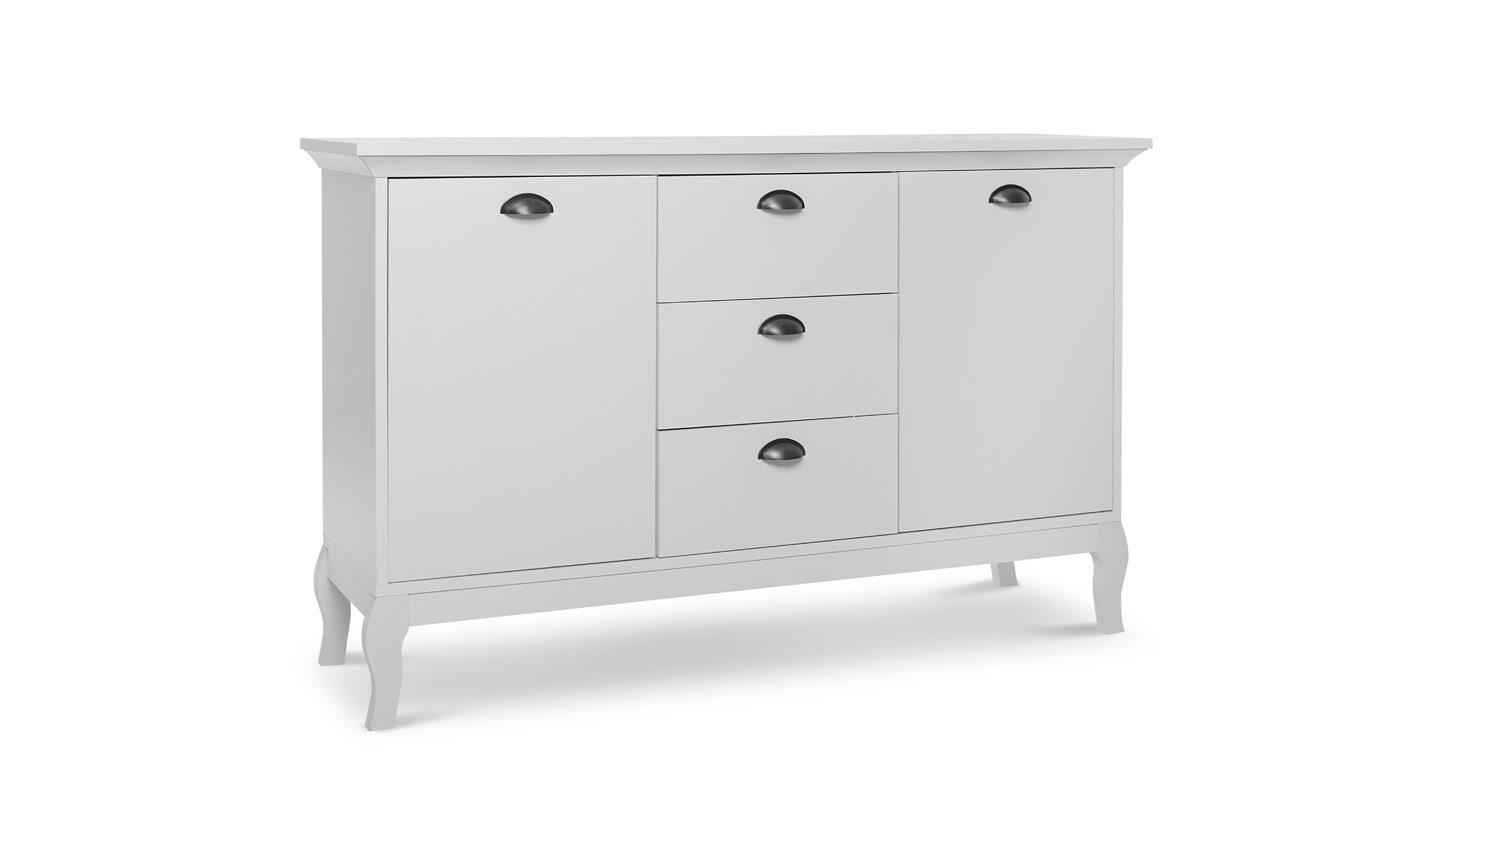 sideboard provence kommode anrichte schrank in wei barock look 140 cm. Black Bedroom Furniture Sets. Home Design Ideas